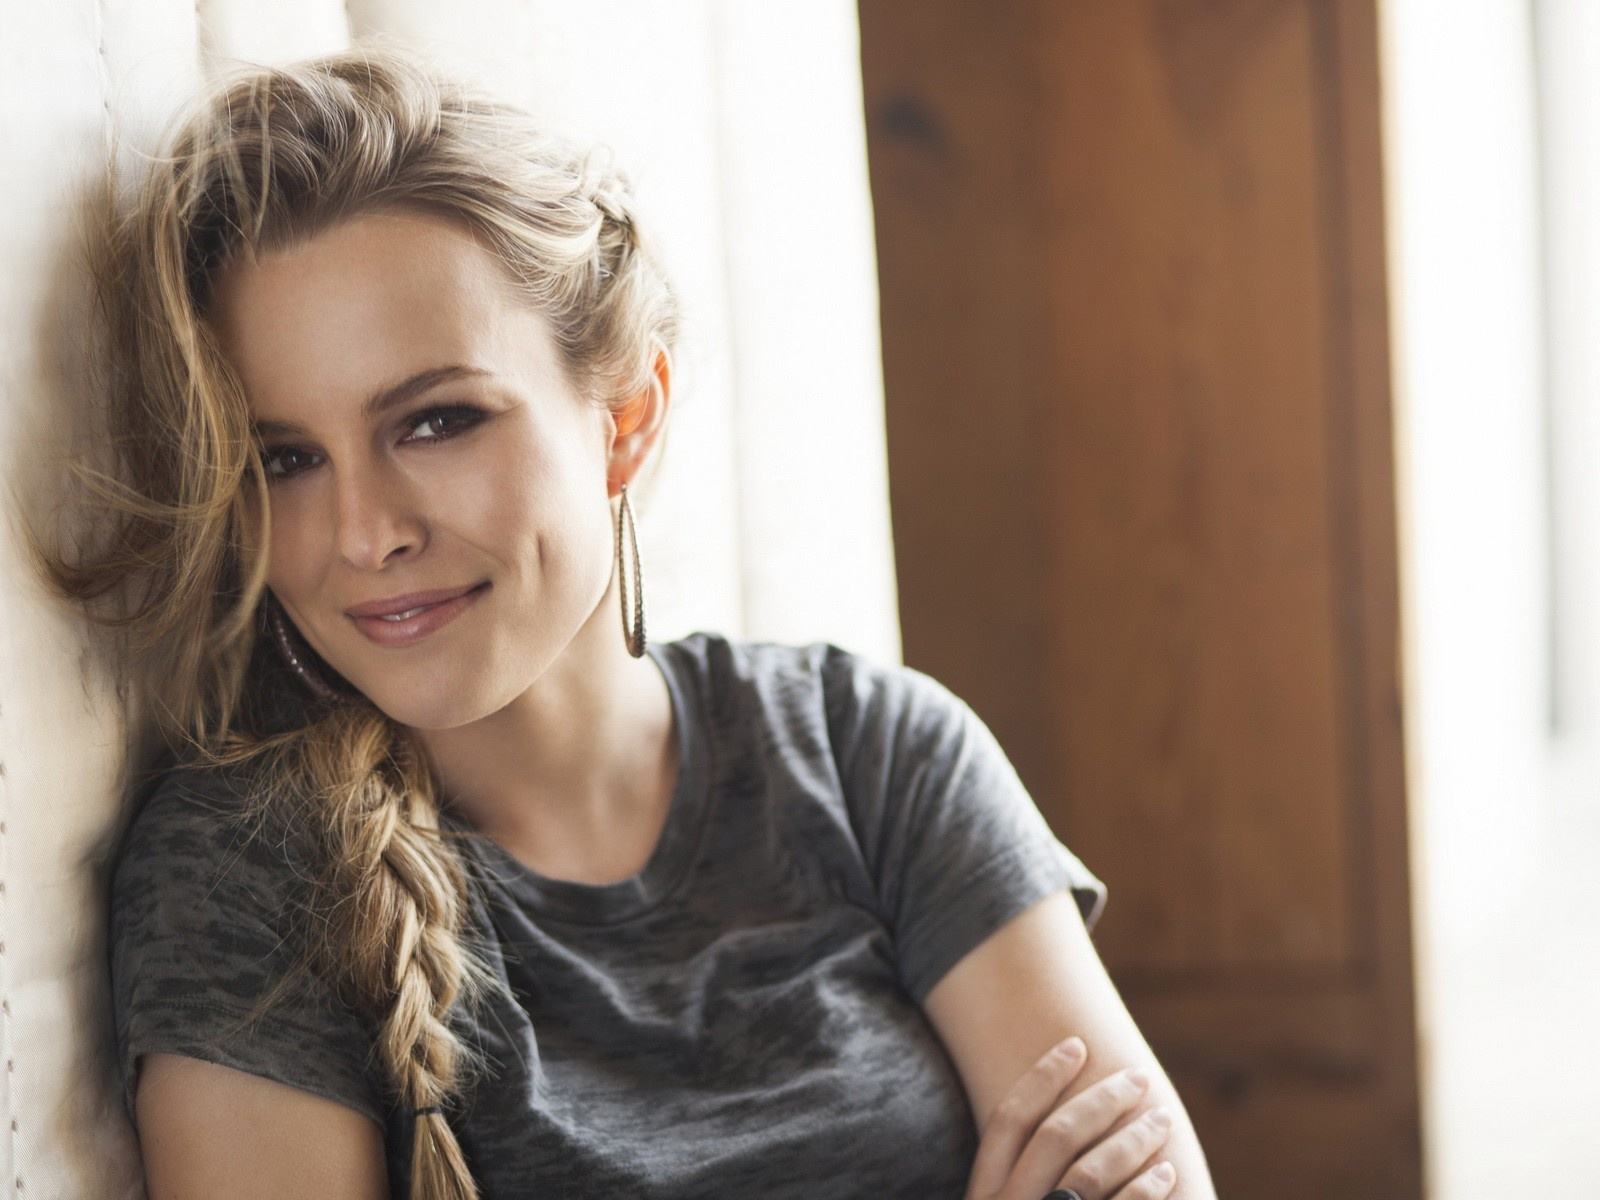 click to free download the wallpaper--Beautiful Ladies Post, Bridgit Mendler Smiling, Blonde Hair and Dimple, Beautiful by Nature 1600X1200 free wallpaper download